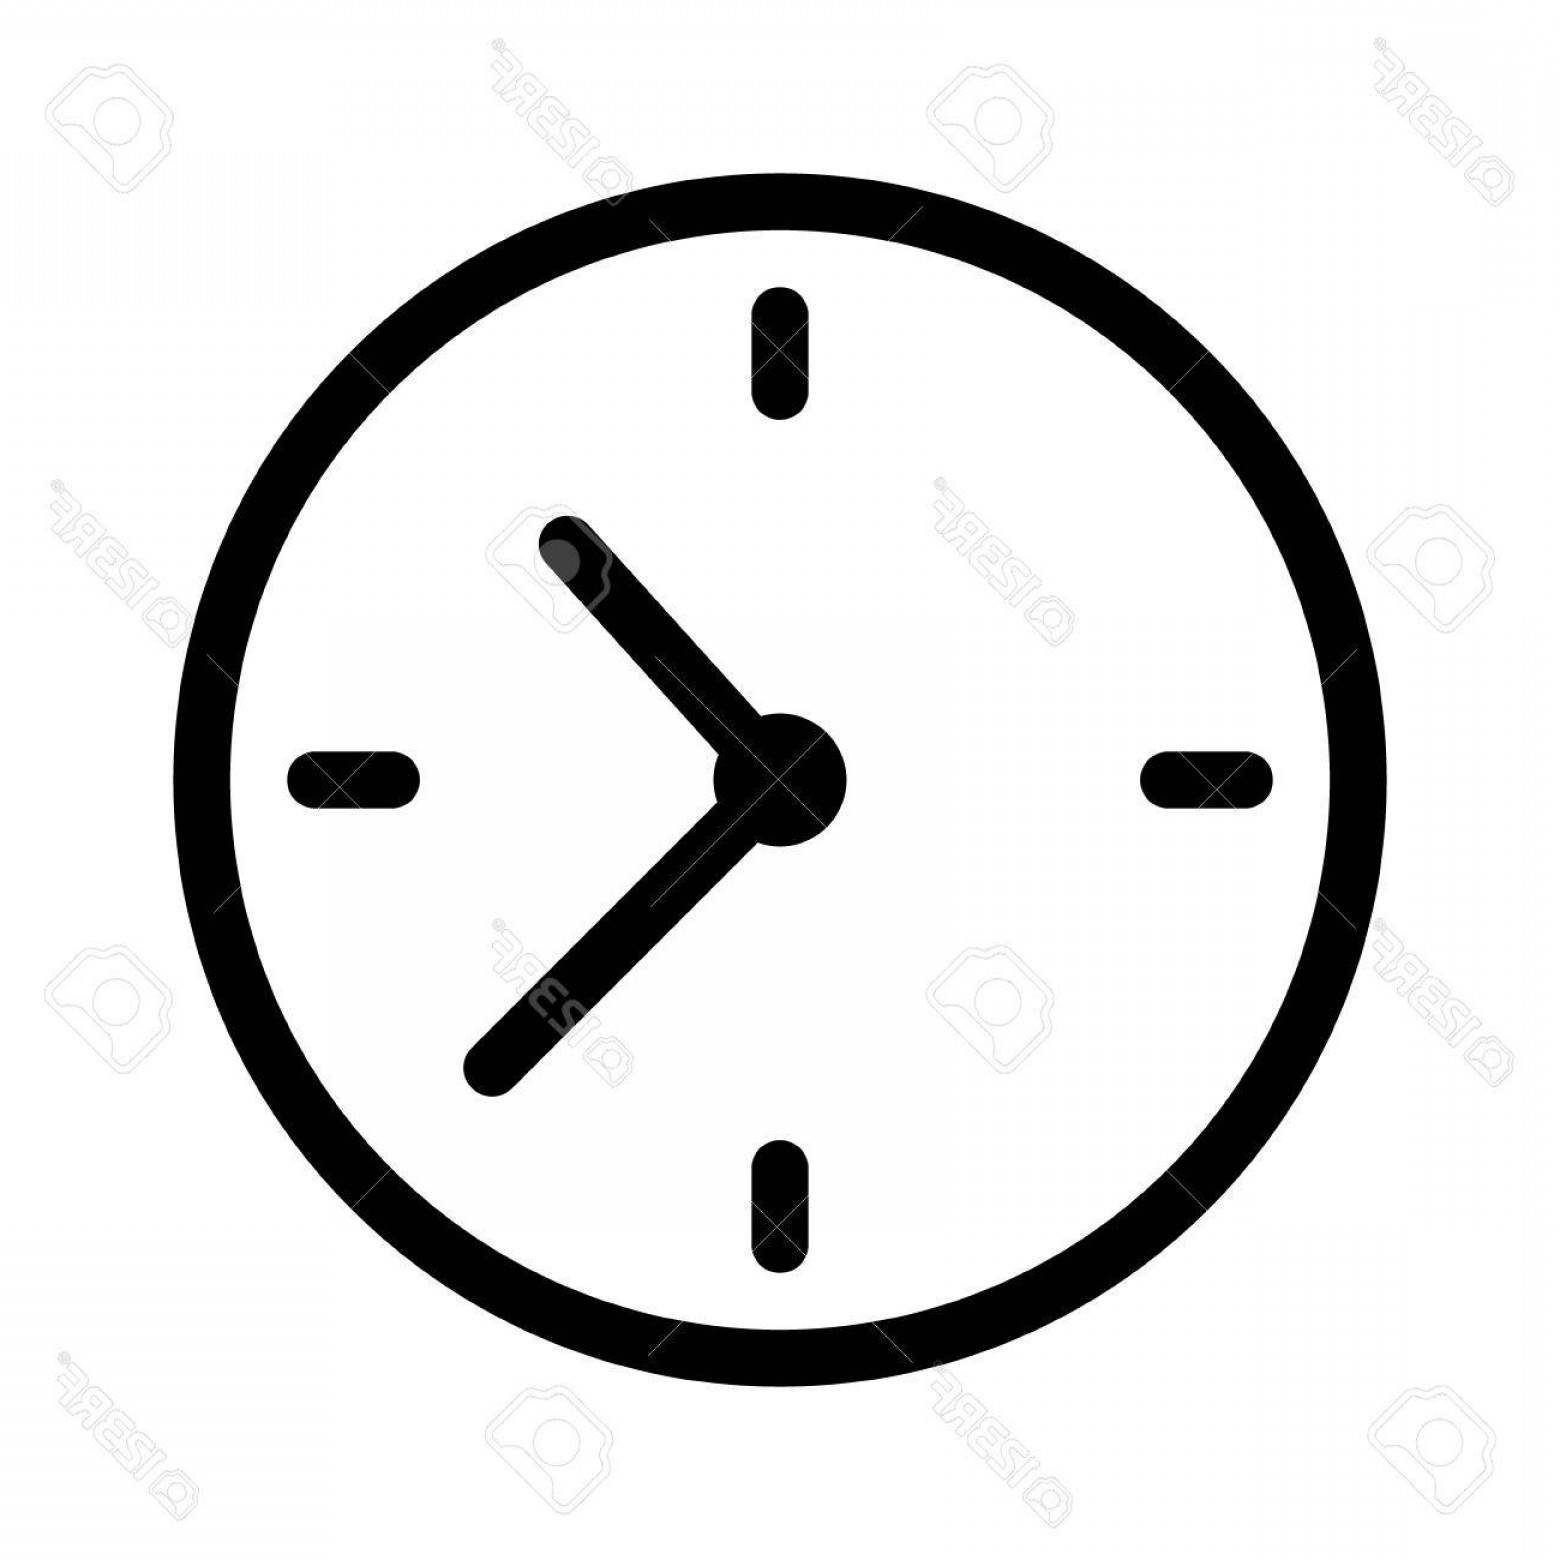 Watch Face Vector: Photostock Vector Simple Clock Face Clockface Or Watch Face With Hands Line Art Icon For Apps And Websites